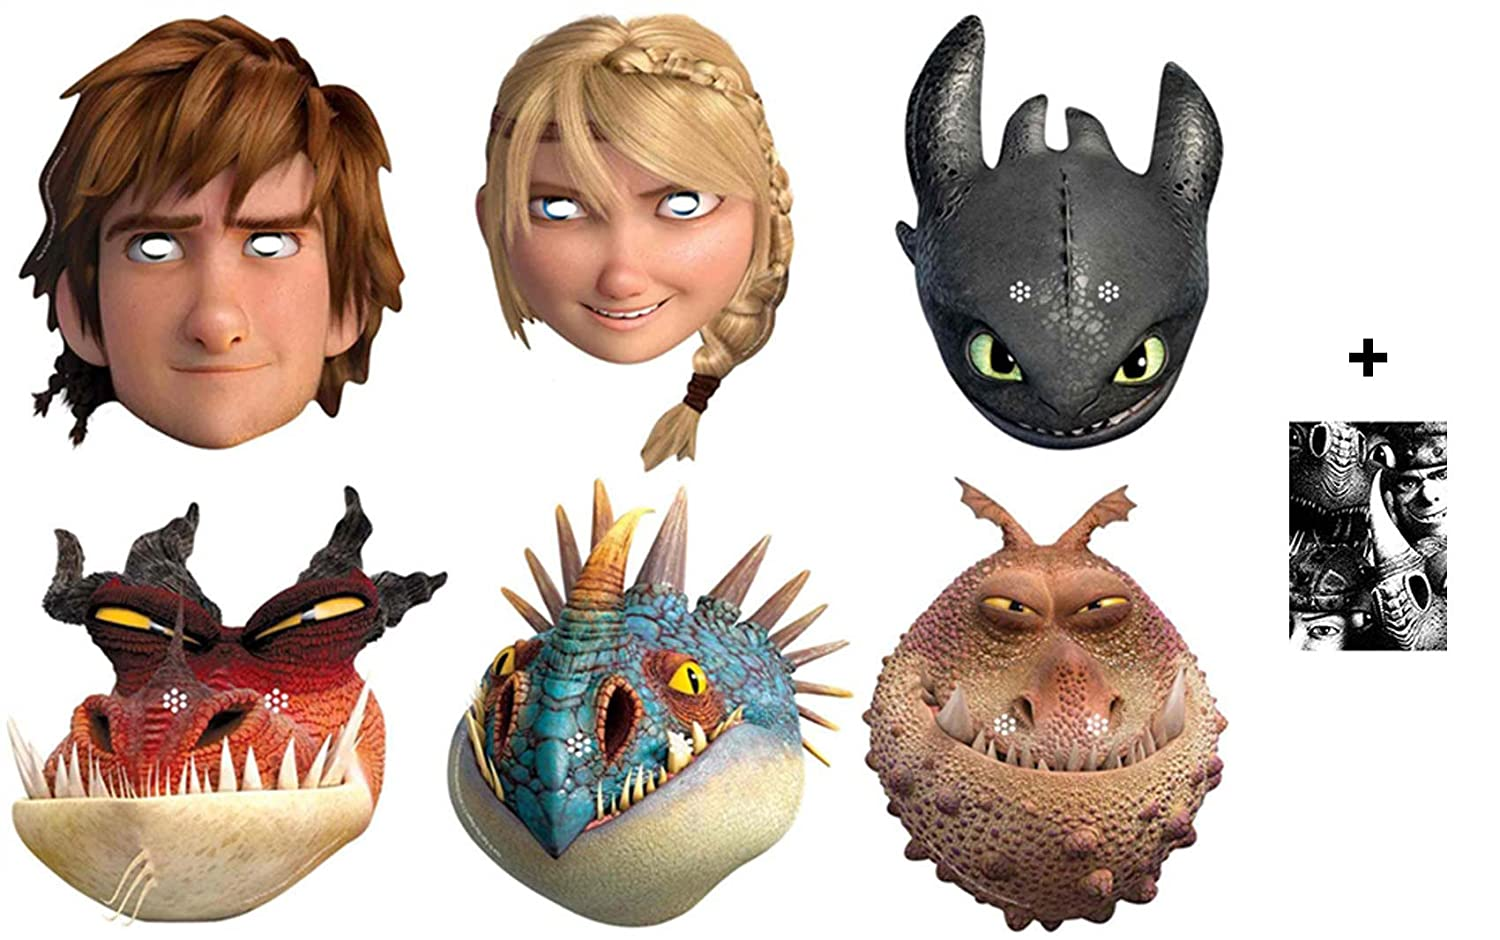 How To Train Your Dragon 2 (Dragons 2) - Masque en carton de 2D paquet de 6 (Hiccup, Toothless, Astrid, Nadder, Gronckle et Monstrous Nightmare) Comprend une photo étoile (15x10cm)